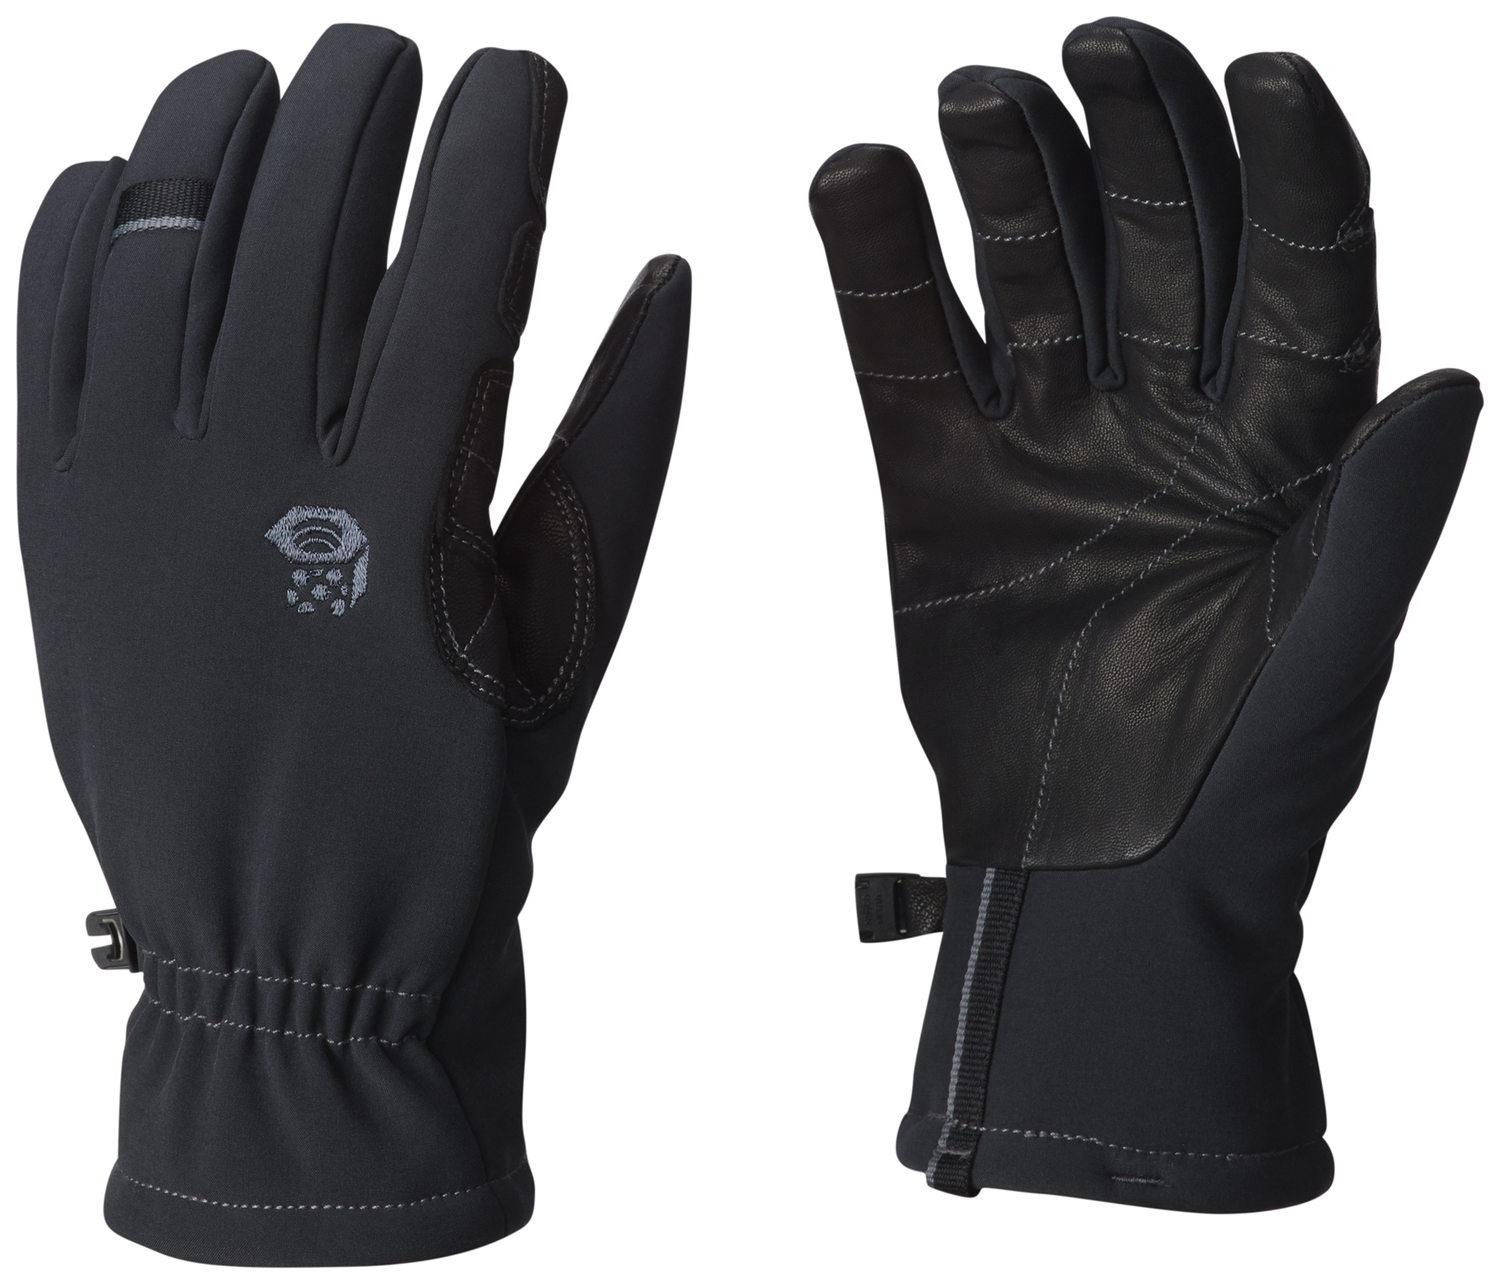 Mountain Hardwear Women's Torsion™ Insulated Glove | Gloves